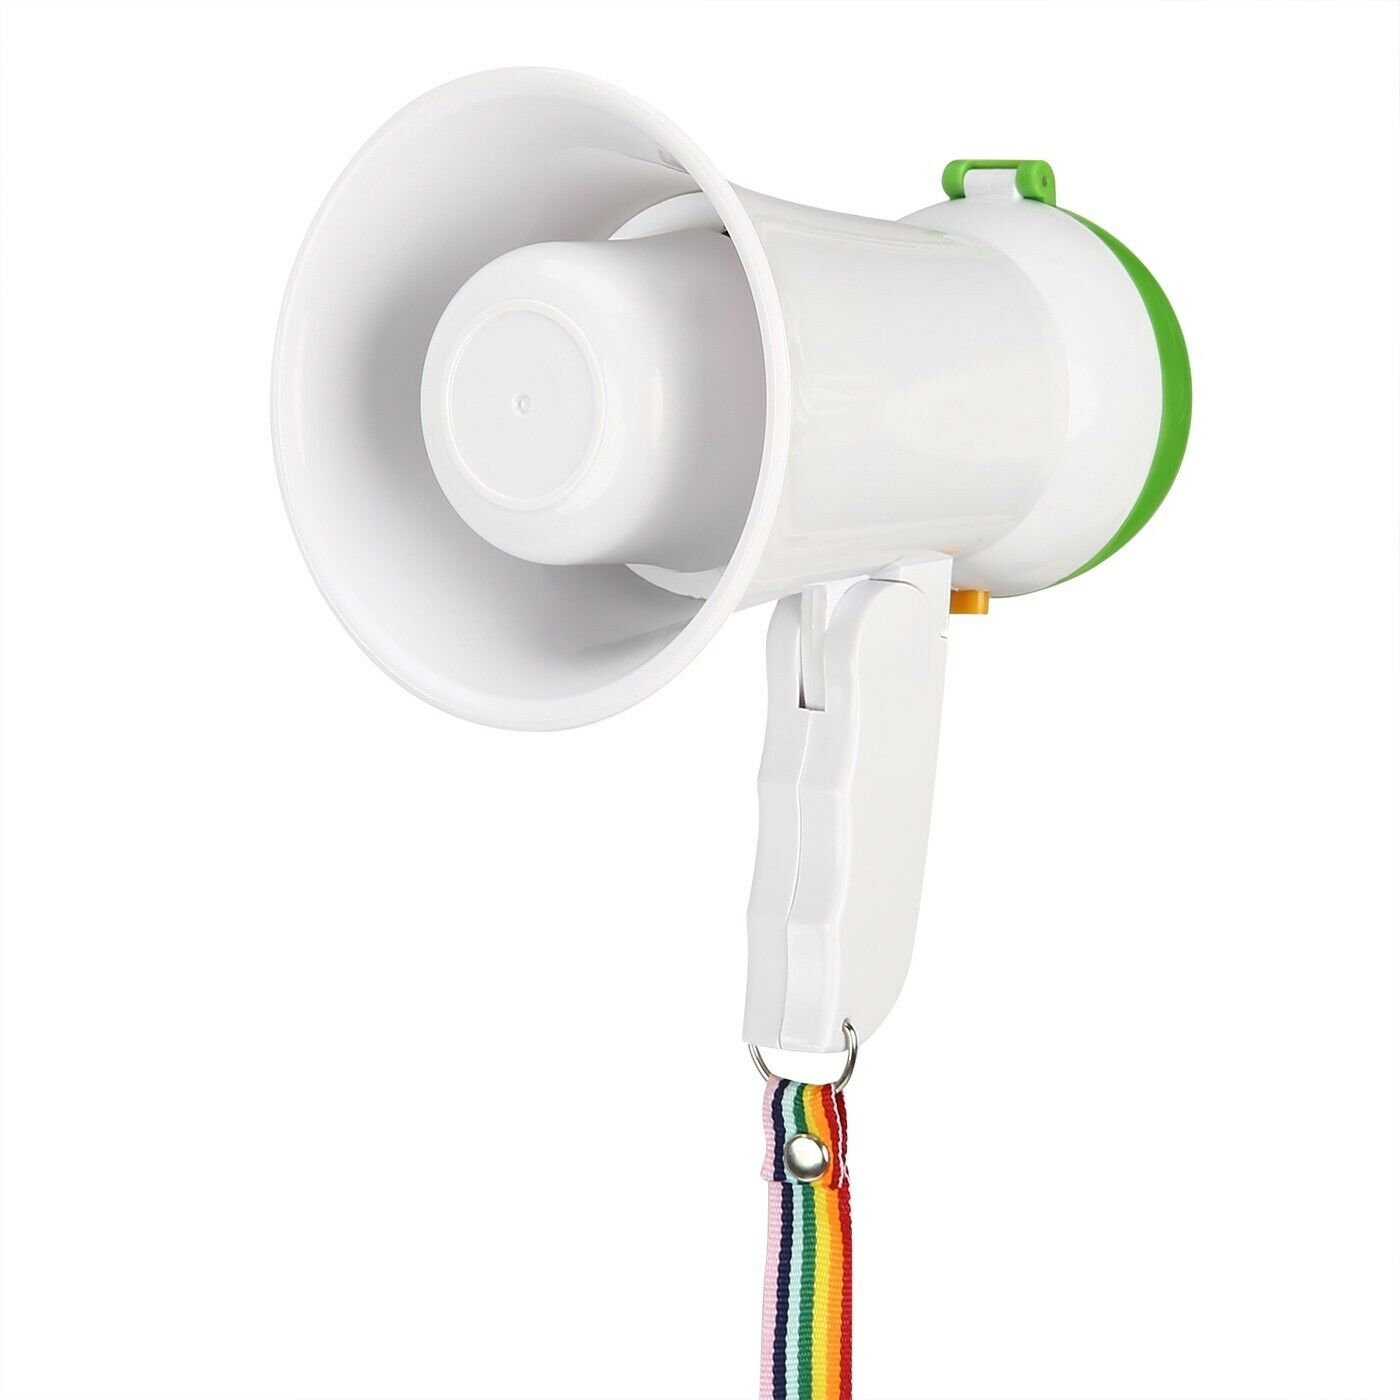 HDE 5W Mini Bull Horn Megaphone Voice Amplifier with Lanyard